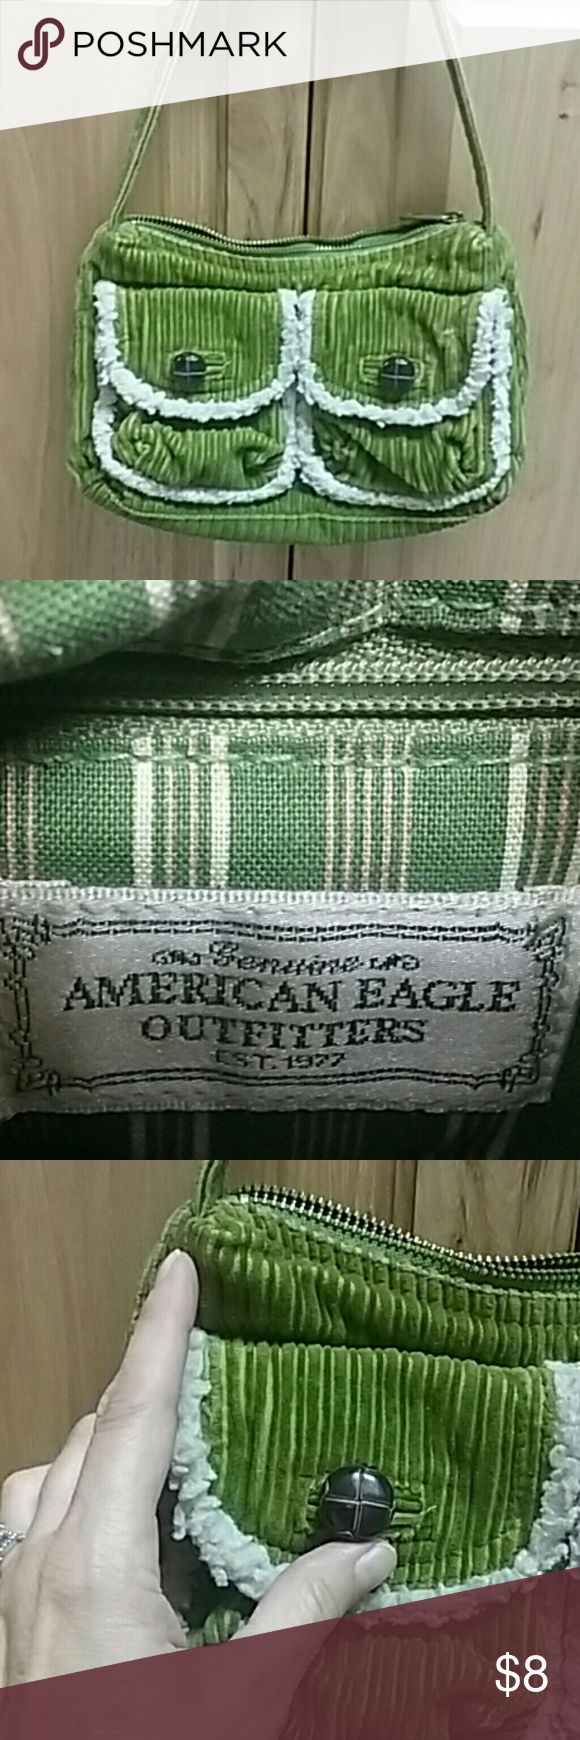 Handbag American Eagle Outfitters Small green corduroy handbag American Eagle Outfitters Bags Mini Bags